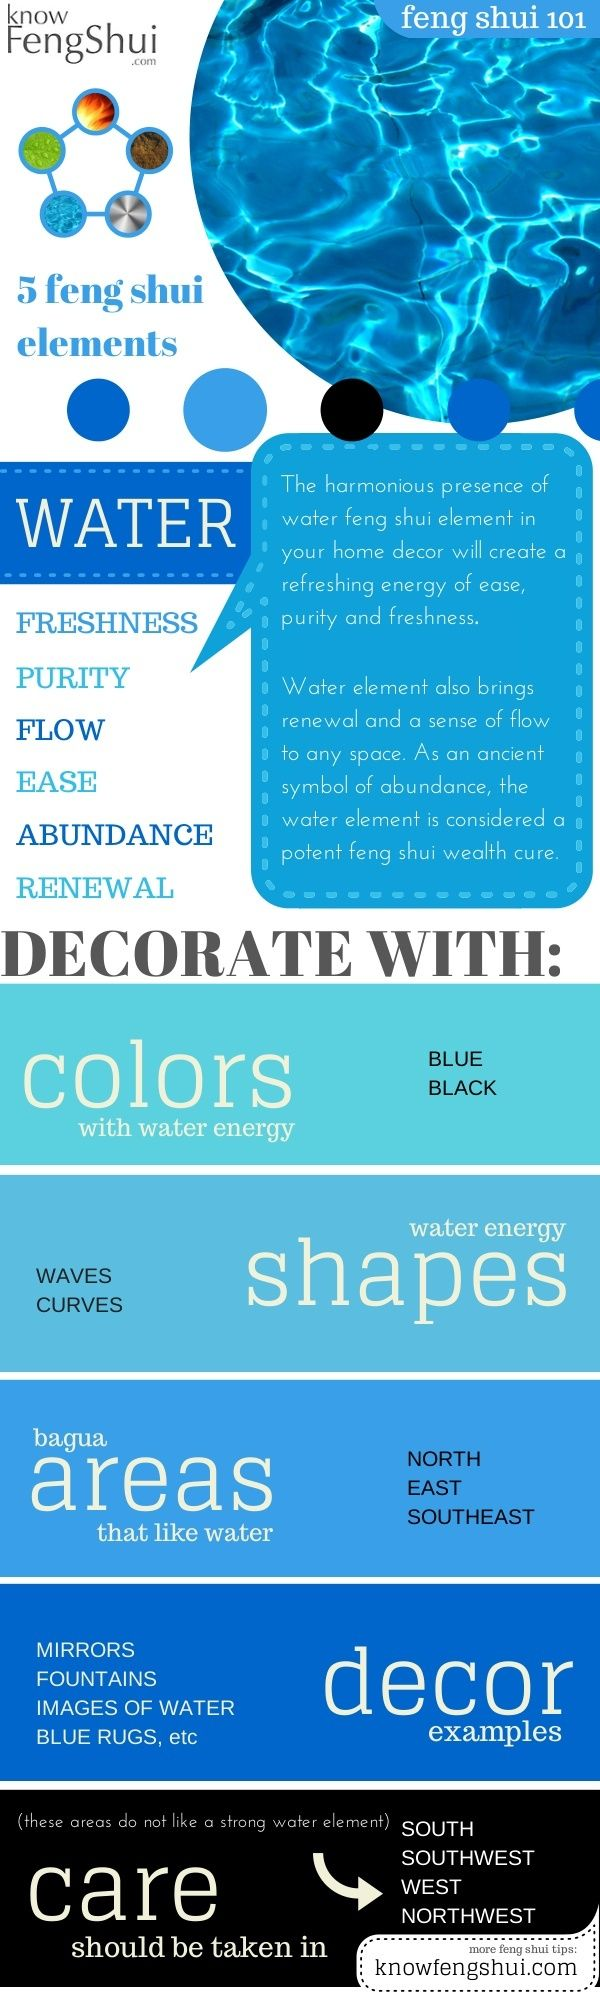 power decorating with water feng shui element office colors include